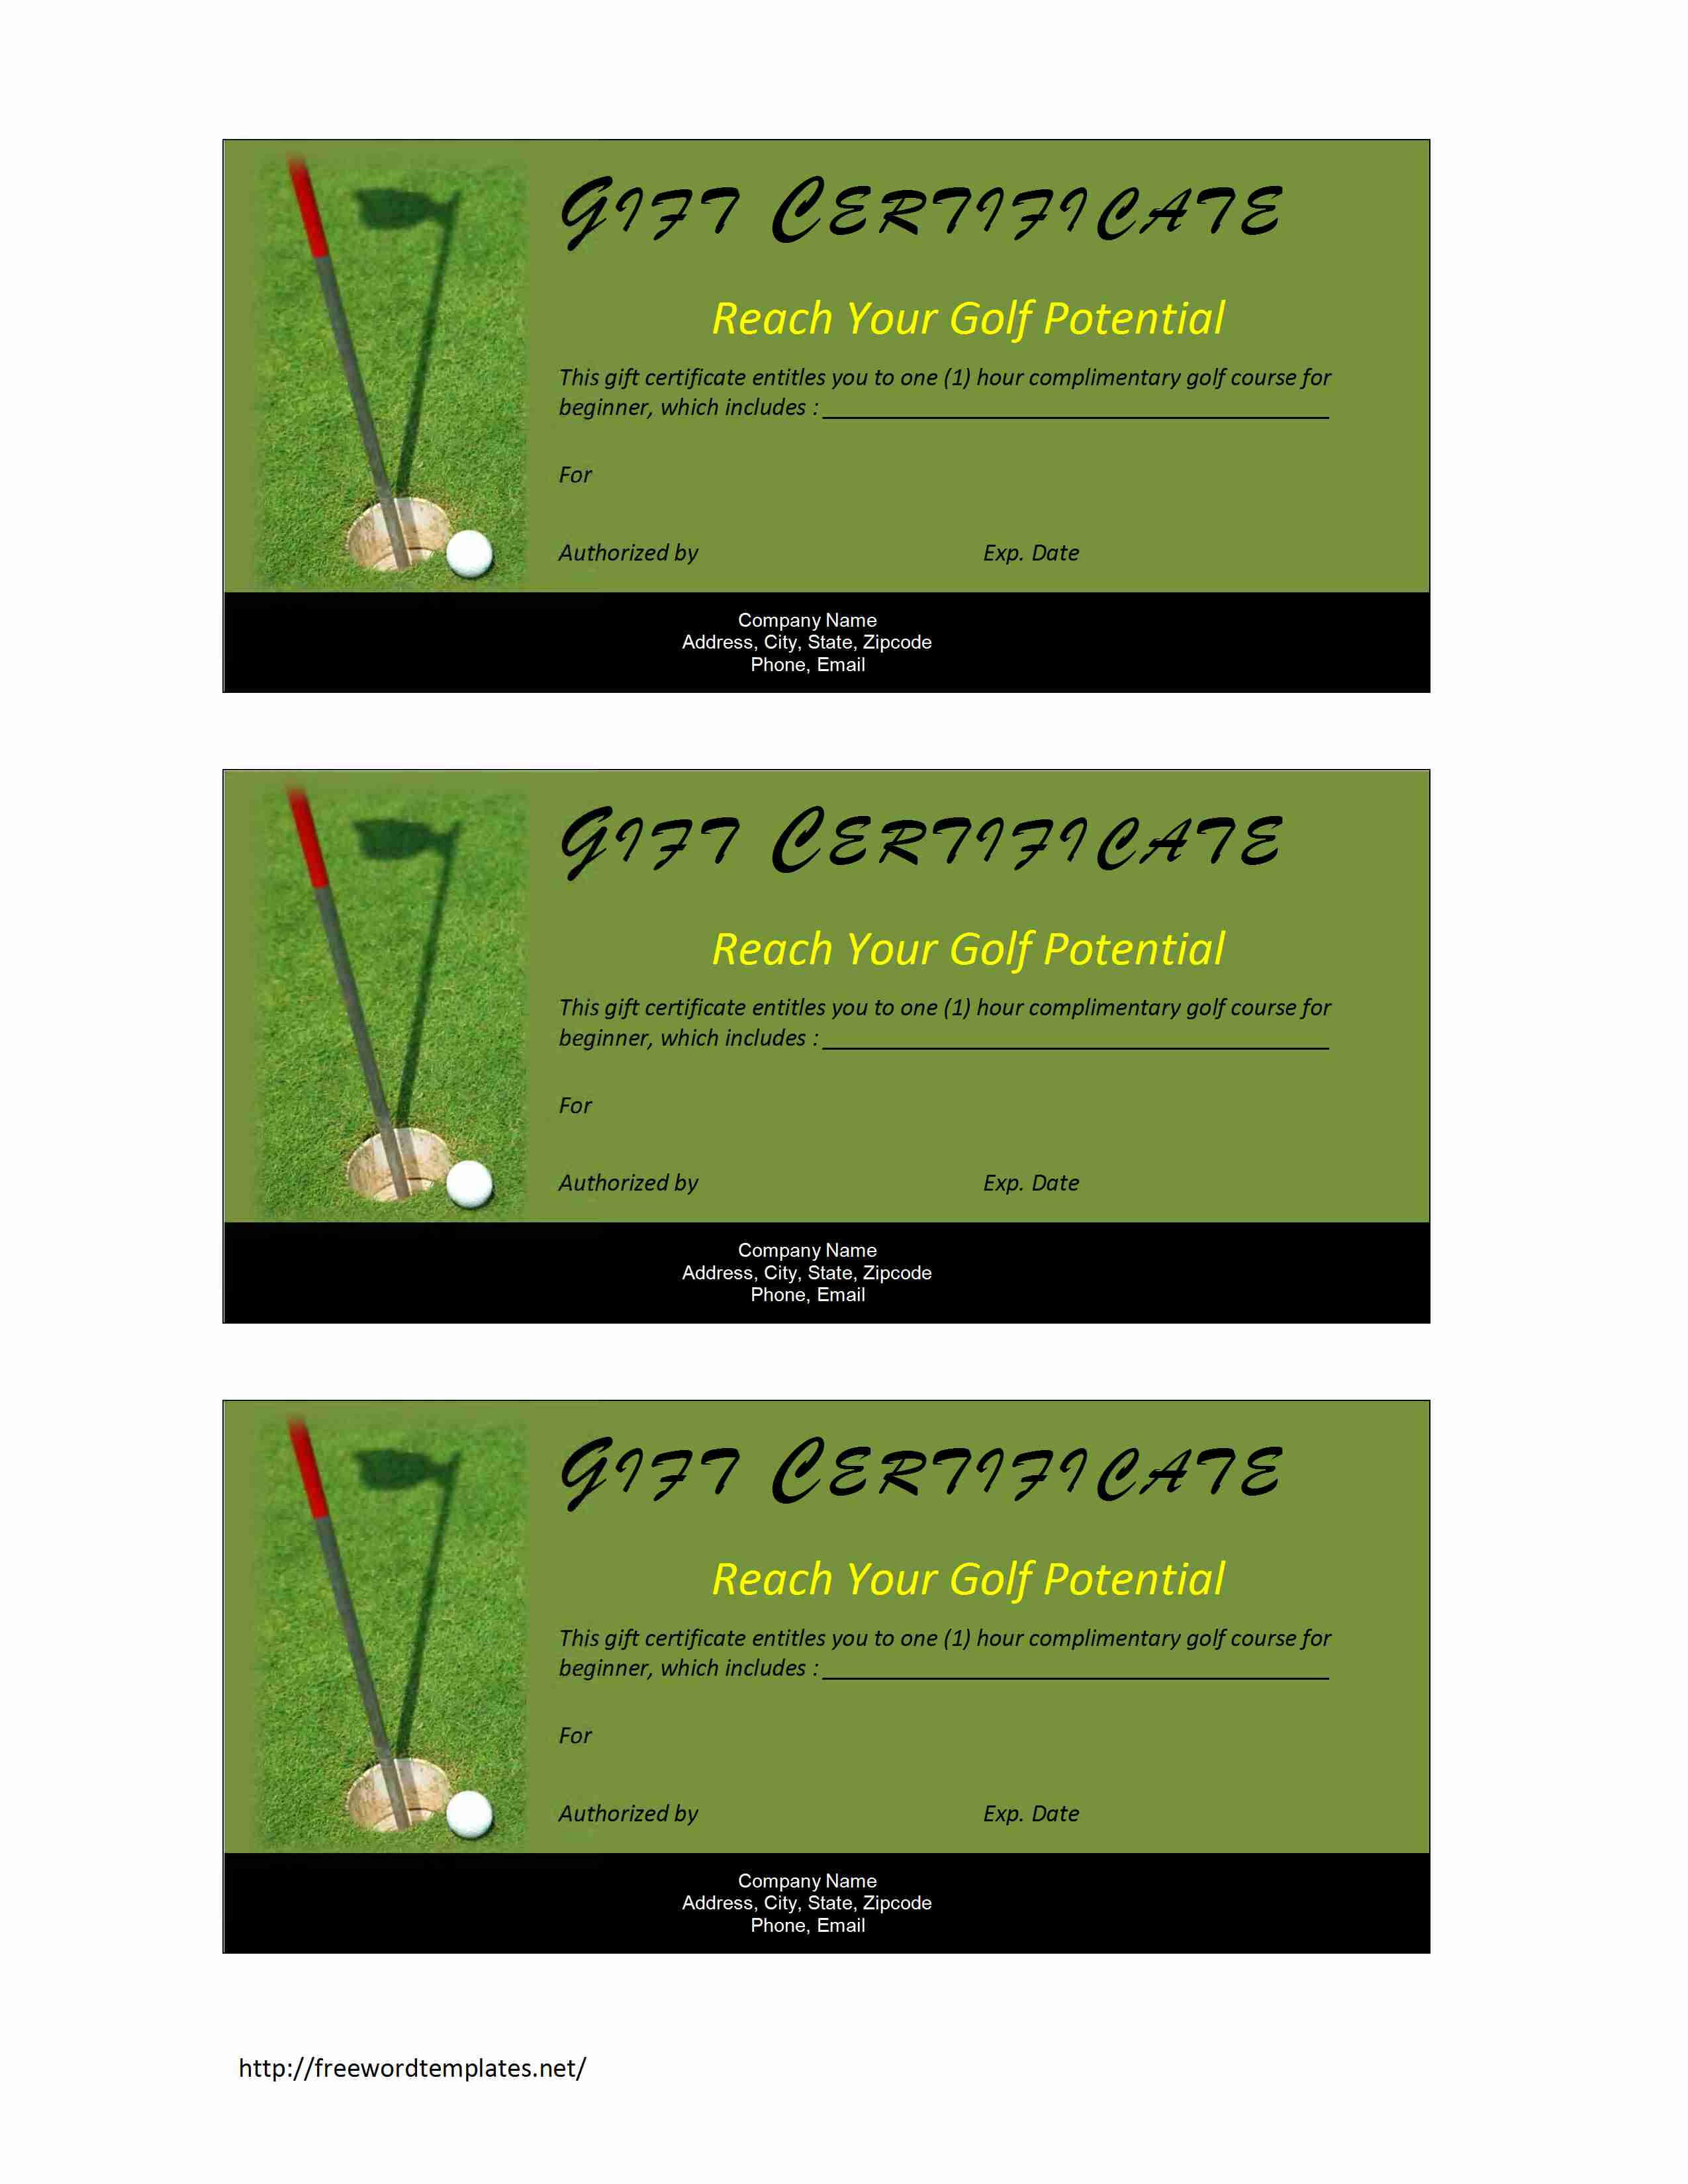 Golf Gift Certificate For Golf Certificate Template Free